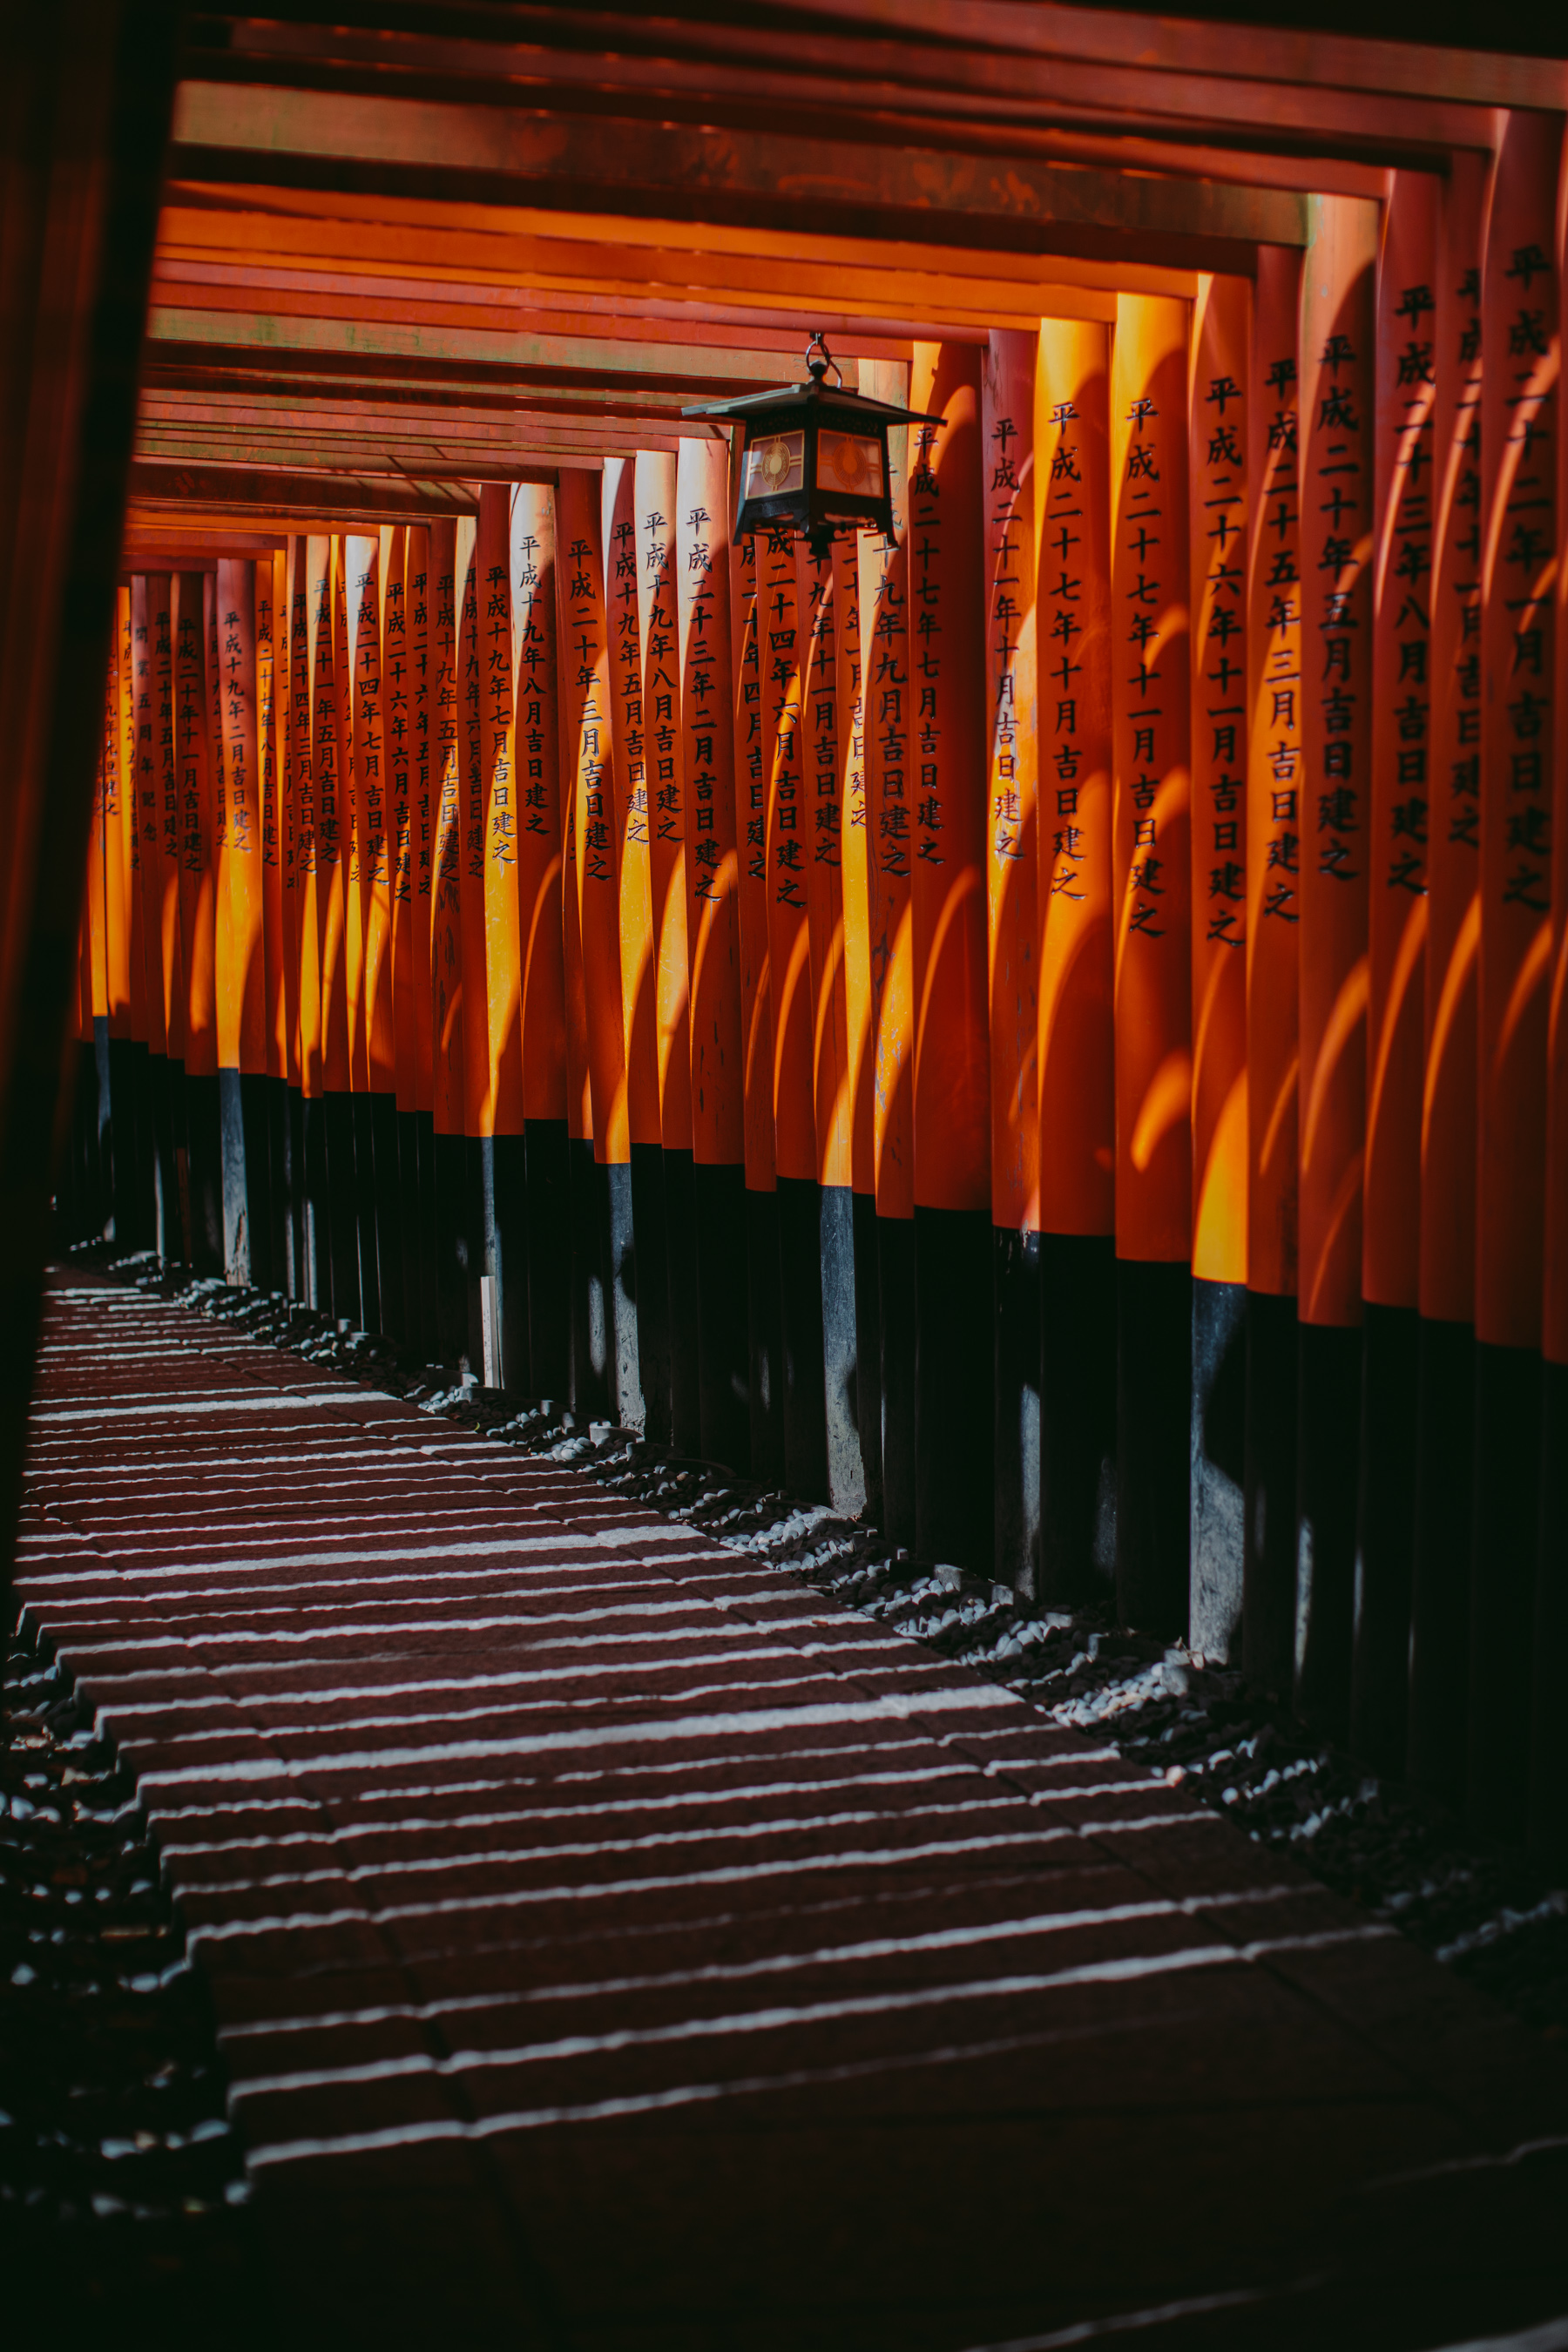 MikeSeehagel-commercial-lifestyle-travel-photography-Japan-53.jpg